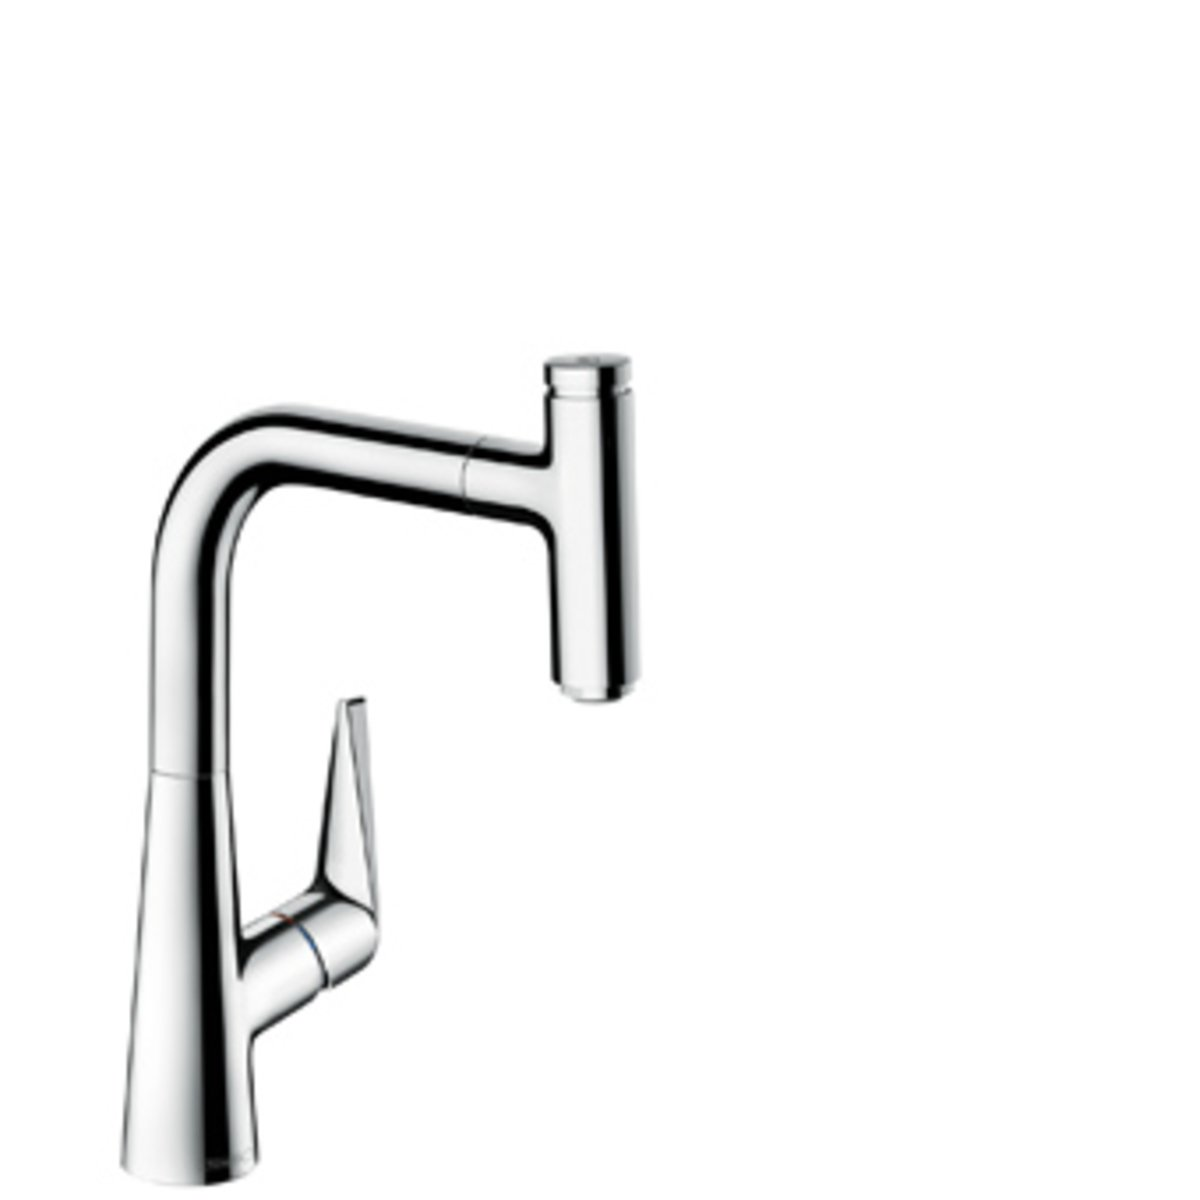 hansgrohe talis select s robinet de cuisine 22cm avec douchette extractible et bec rotatif 150. Black Bedroom Furniture Sets. Home Design Ideas